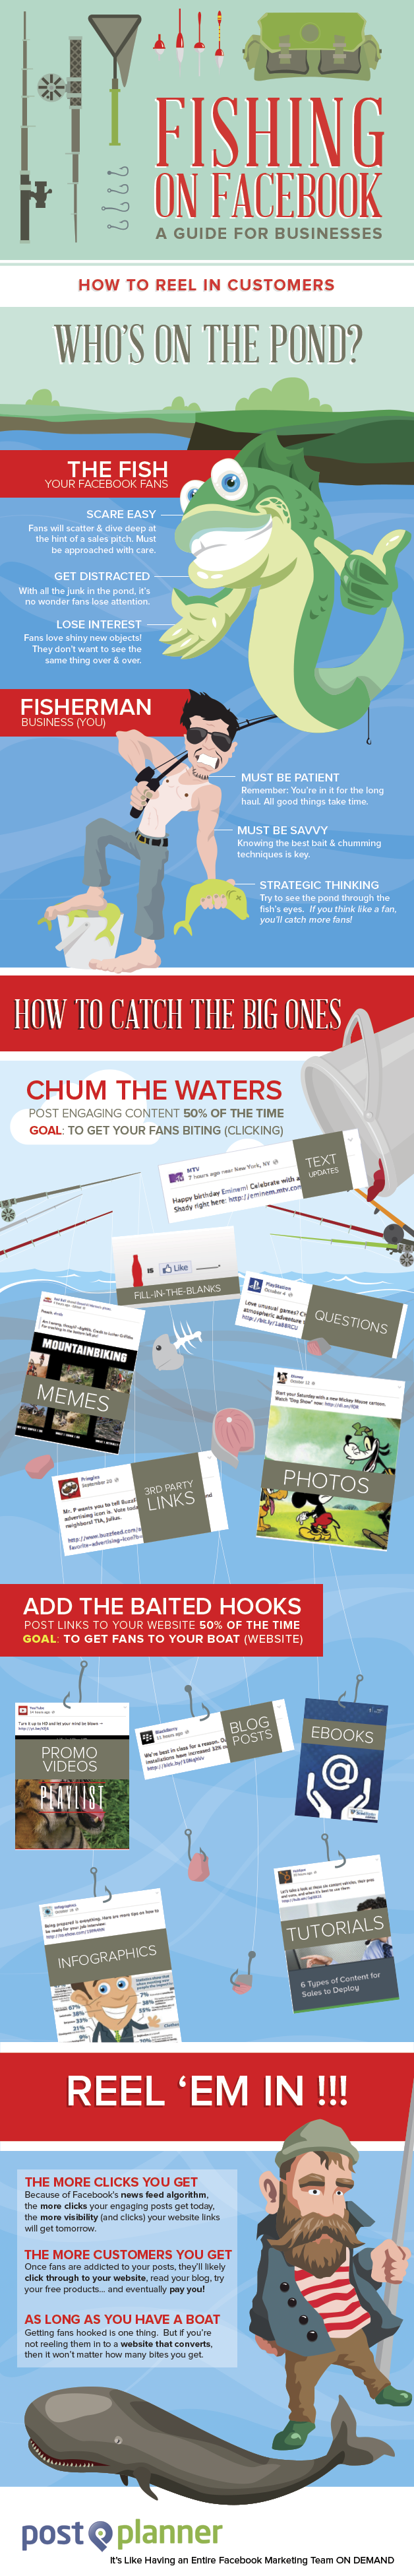 facebook-is-like-fishing-infographic